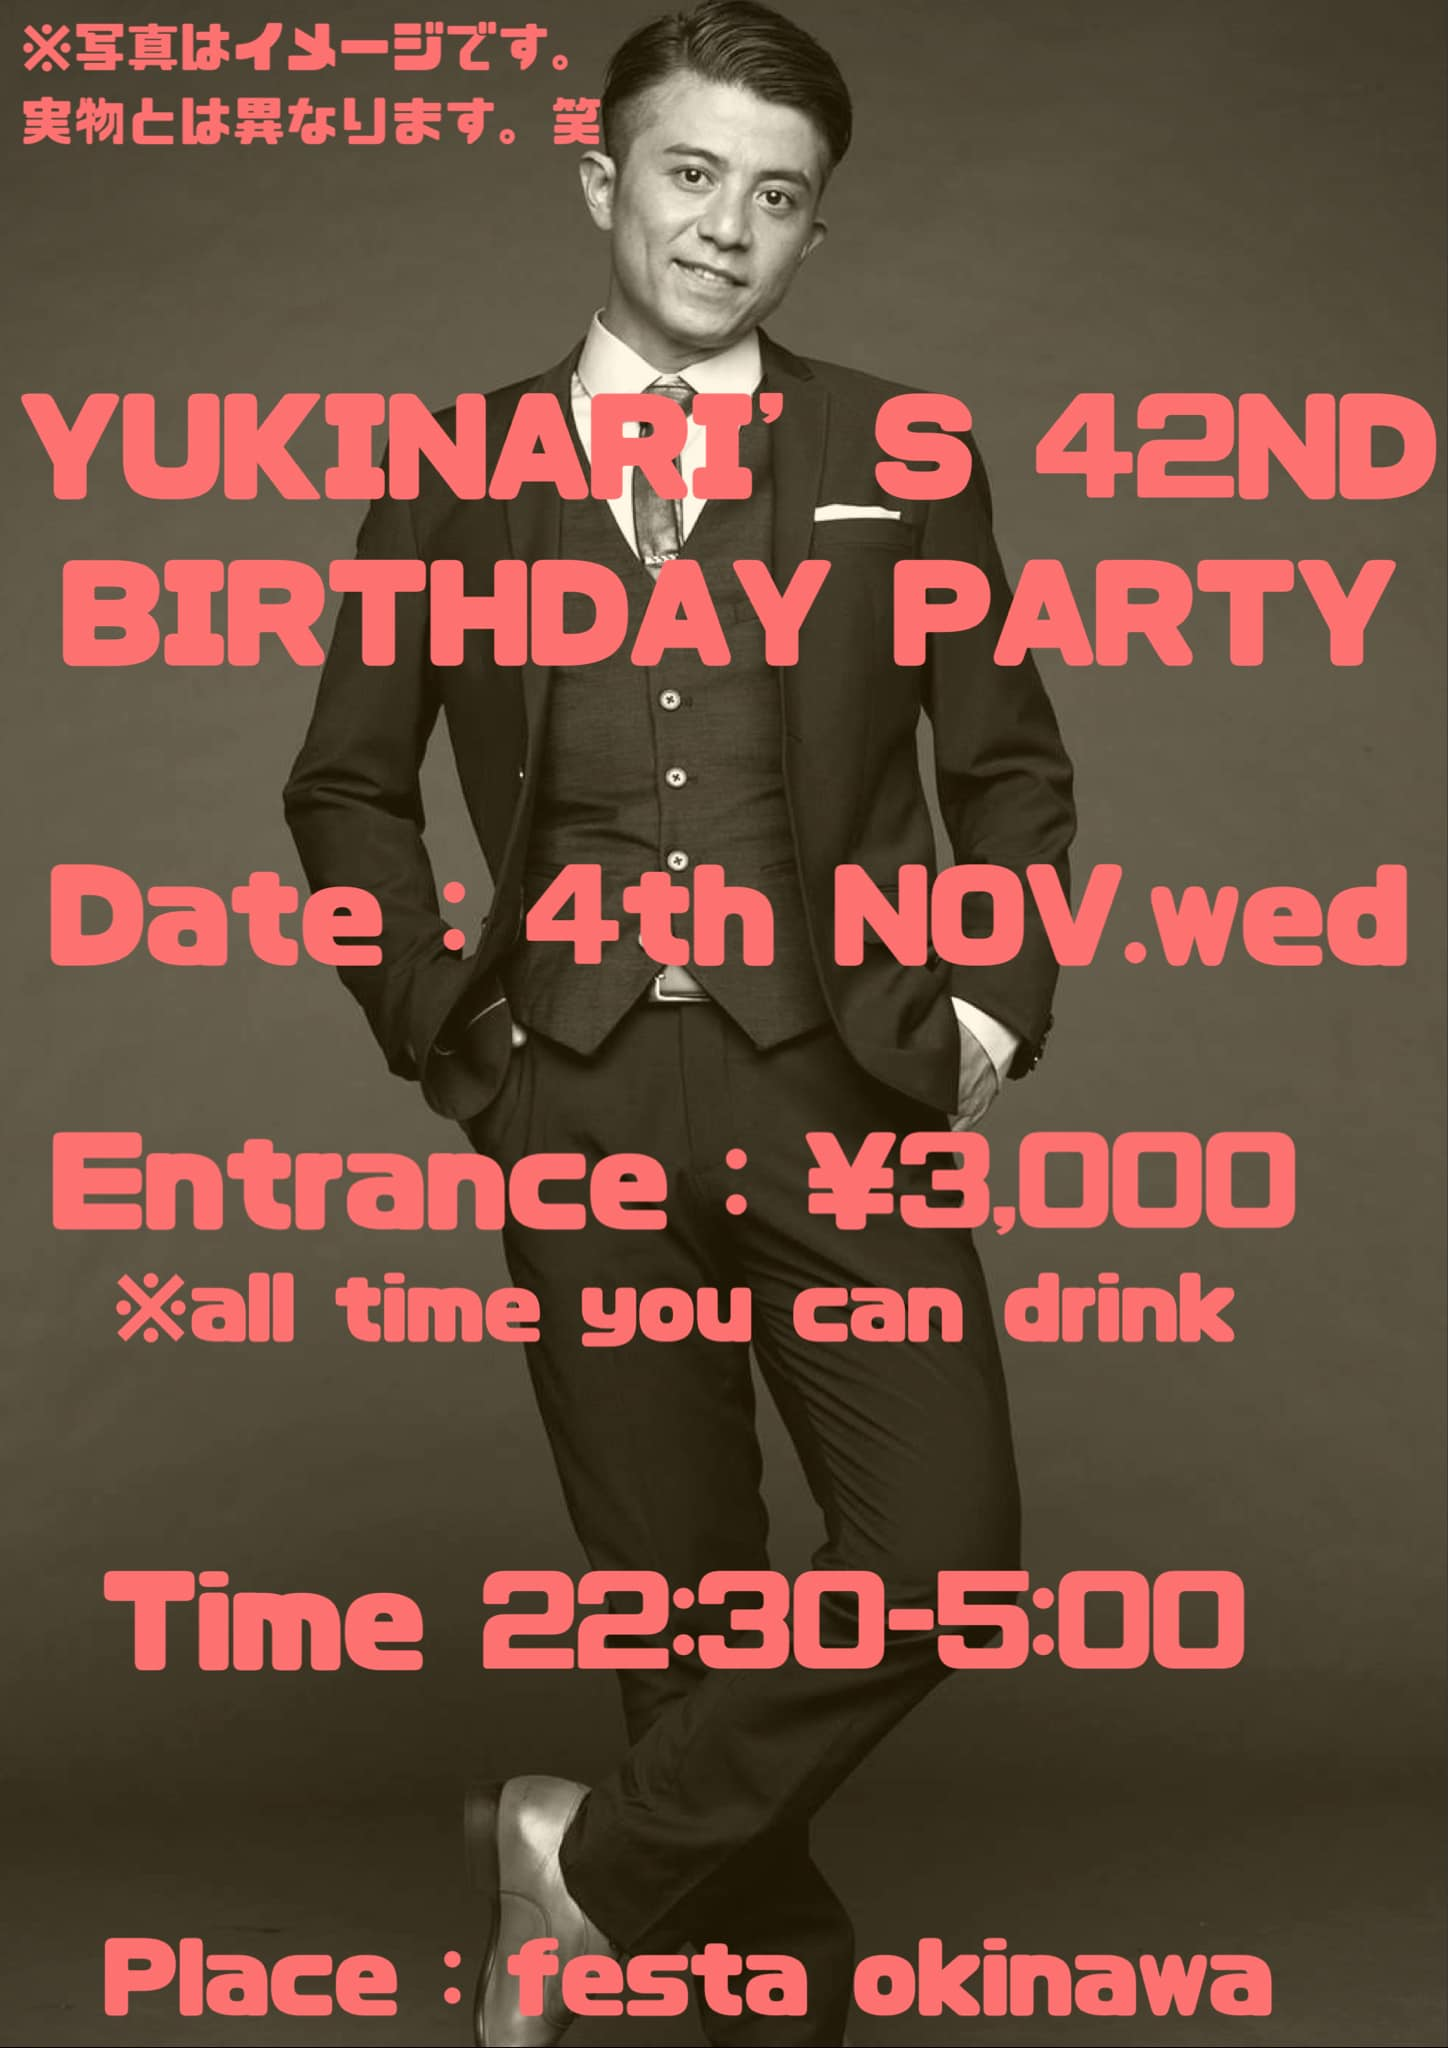 YUKINARI'S 42ND BIRTHDAY PARTY